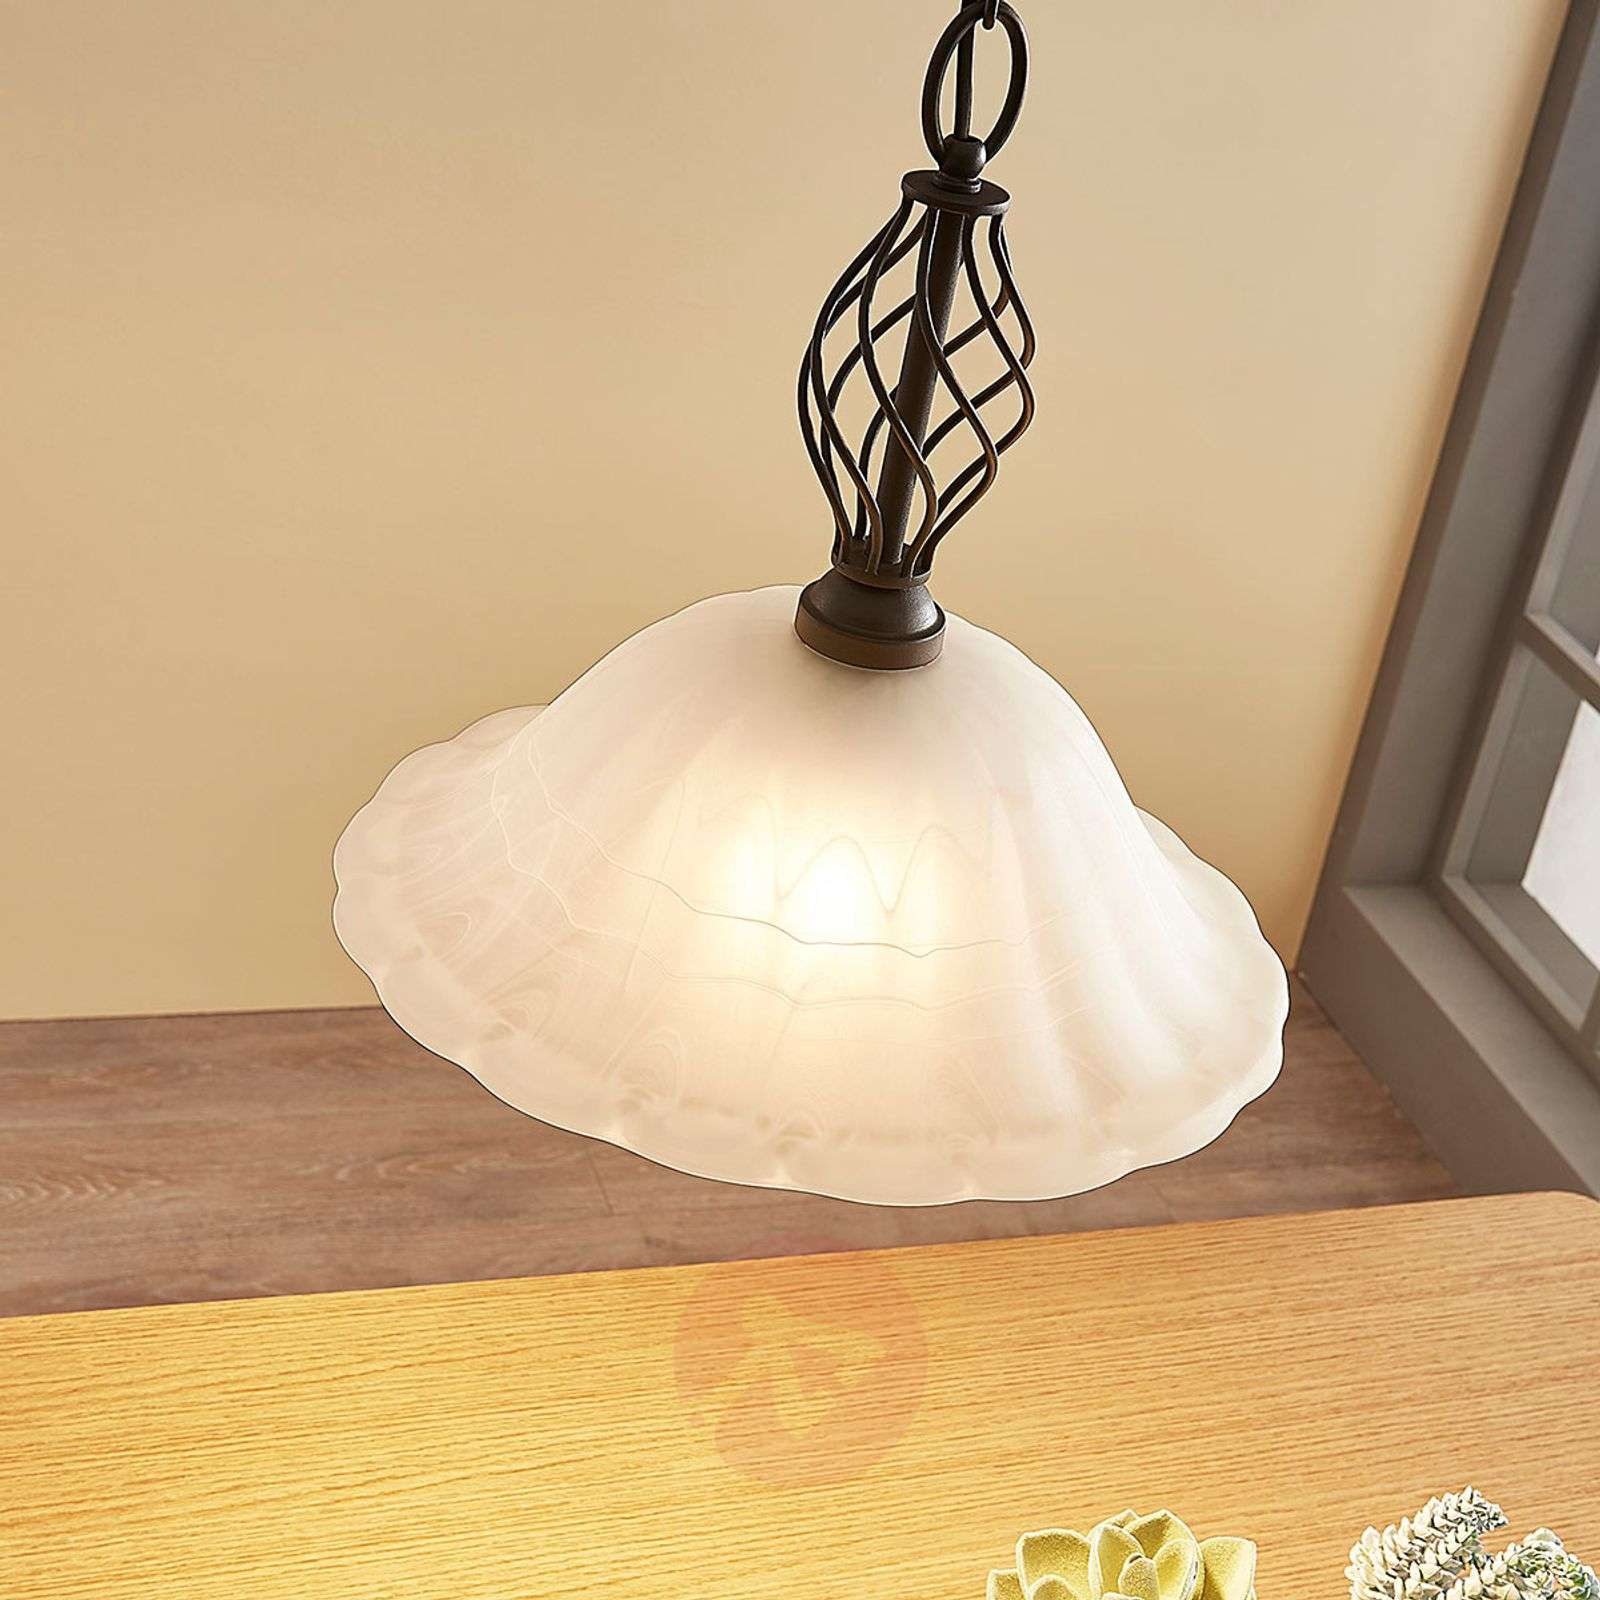 Dunja country house pendant lamp with an E27 LED-9620270-01